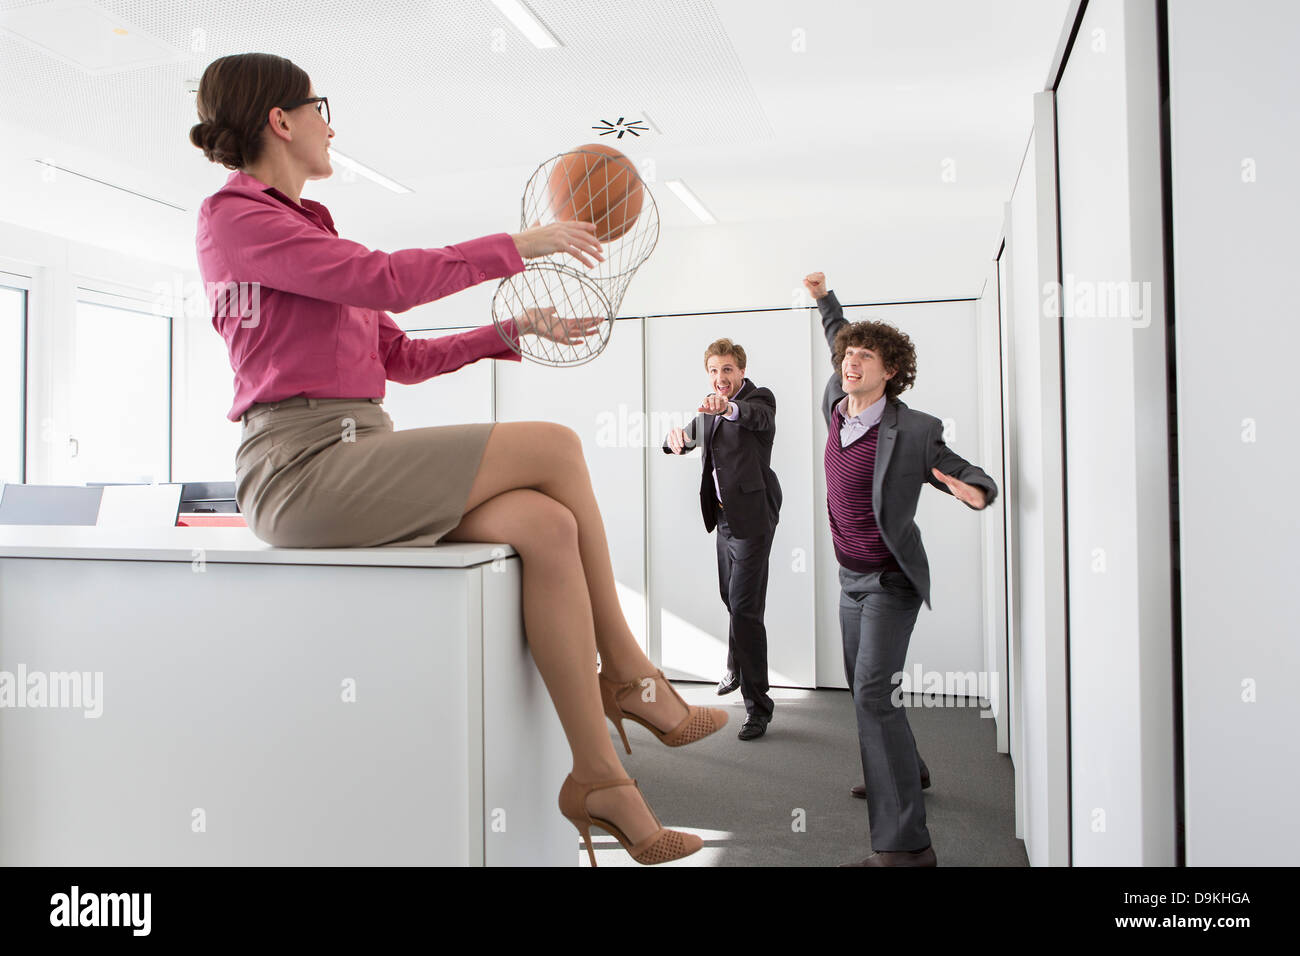 Office workers playing basketball with litter bin - Stock Image